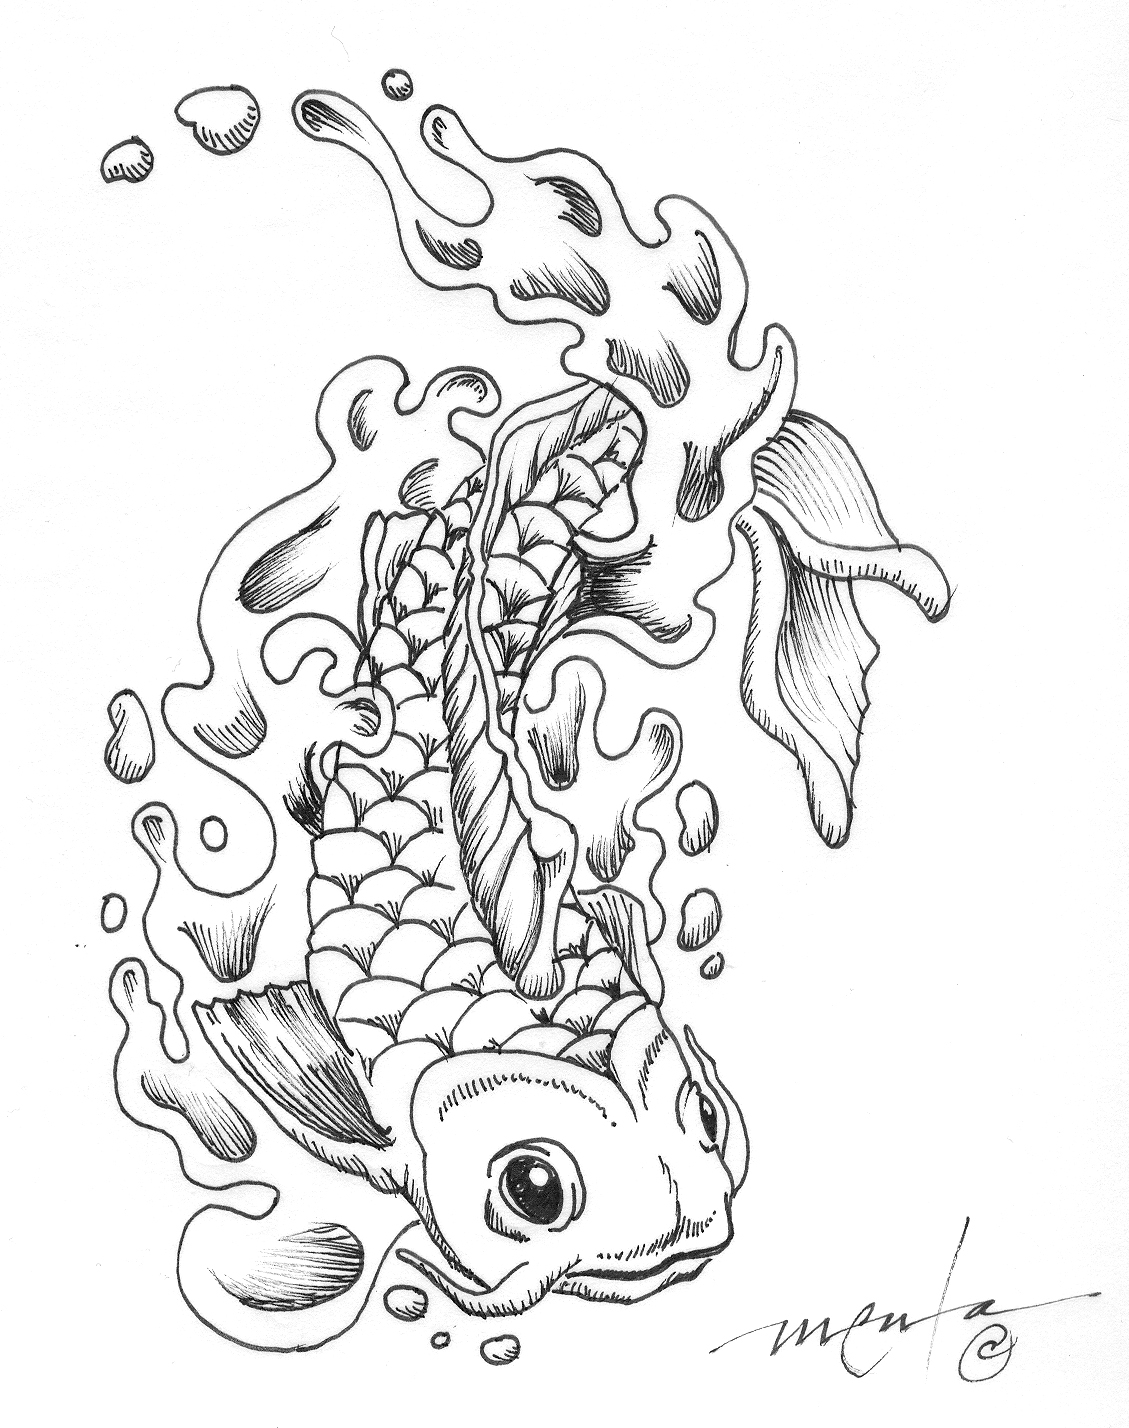 tattoo coloring pages printable tattoo coloring pages coloring pages to download and print pages coloring tattoo printable